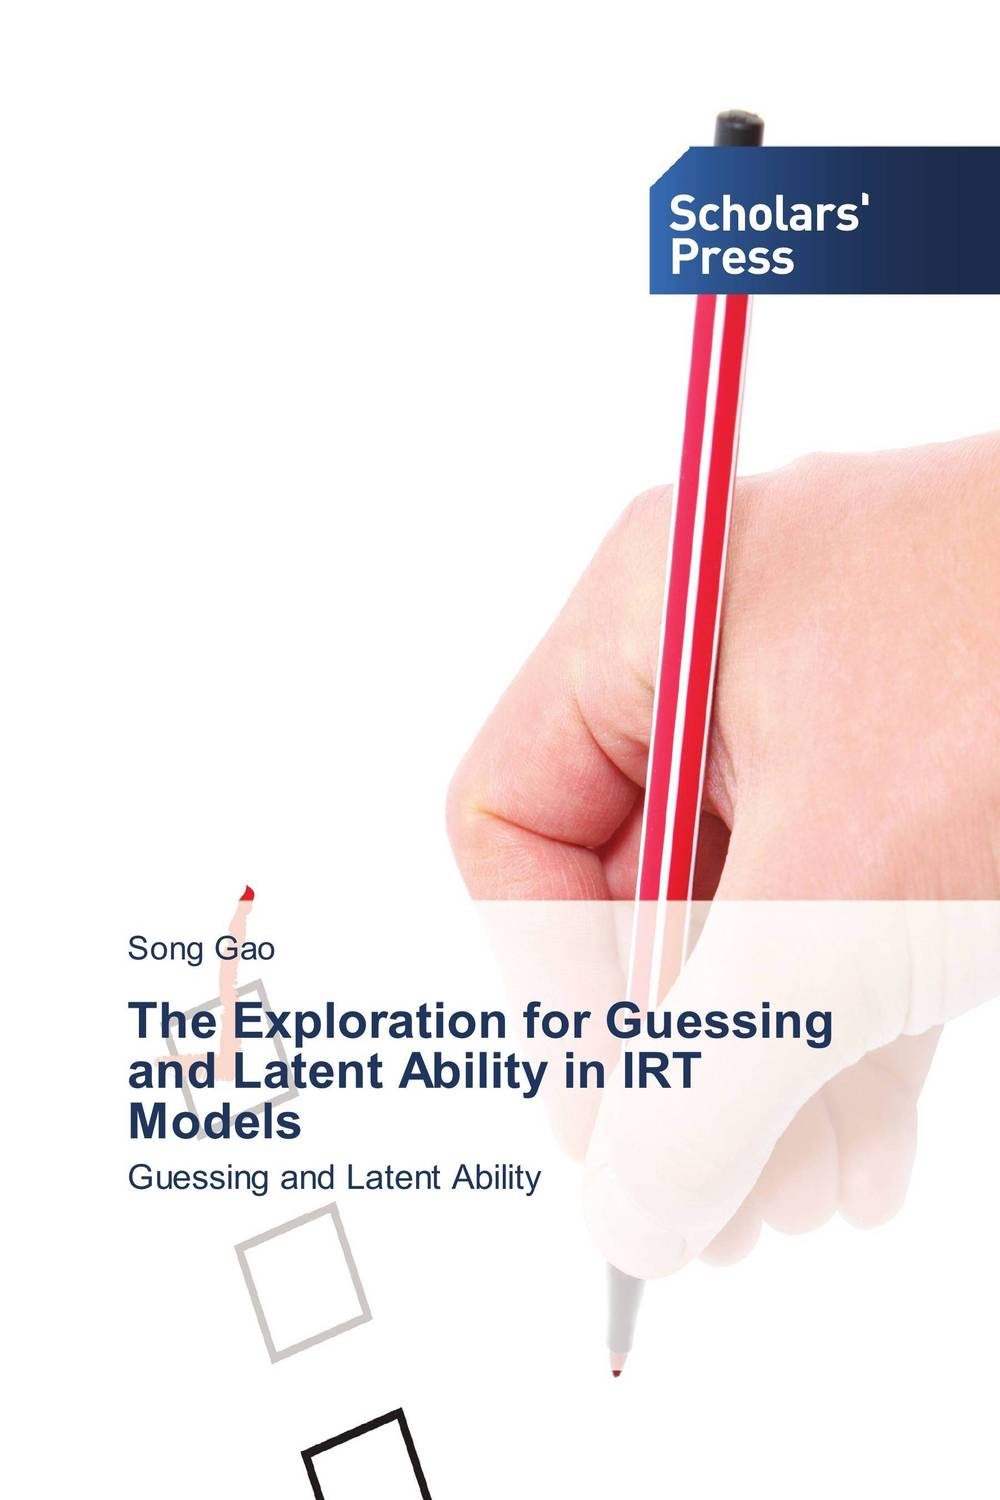 The Exploration for Guessing and Latent Ability in IRT Models muhammad azeem development of math proficiency test using item response theory irt